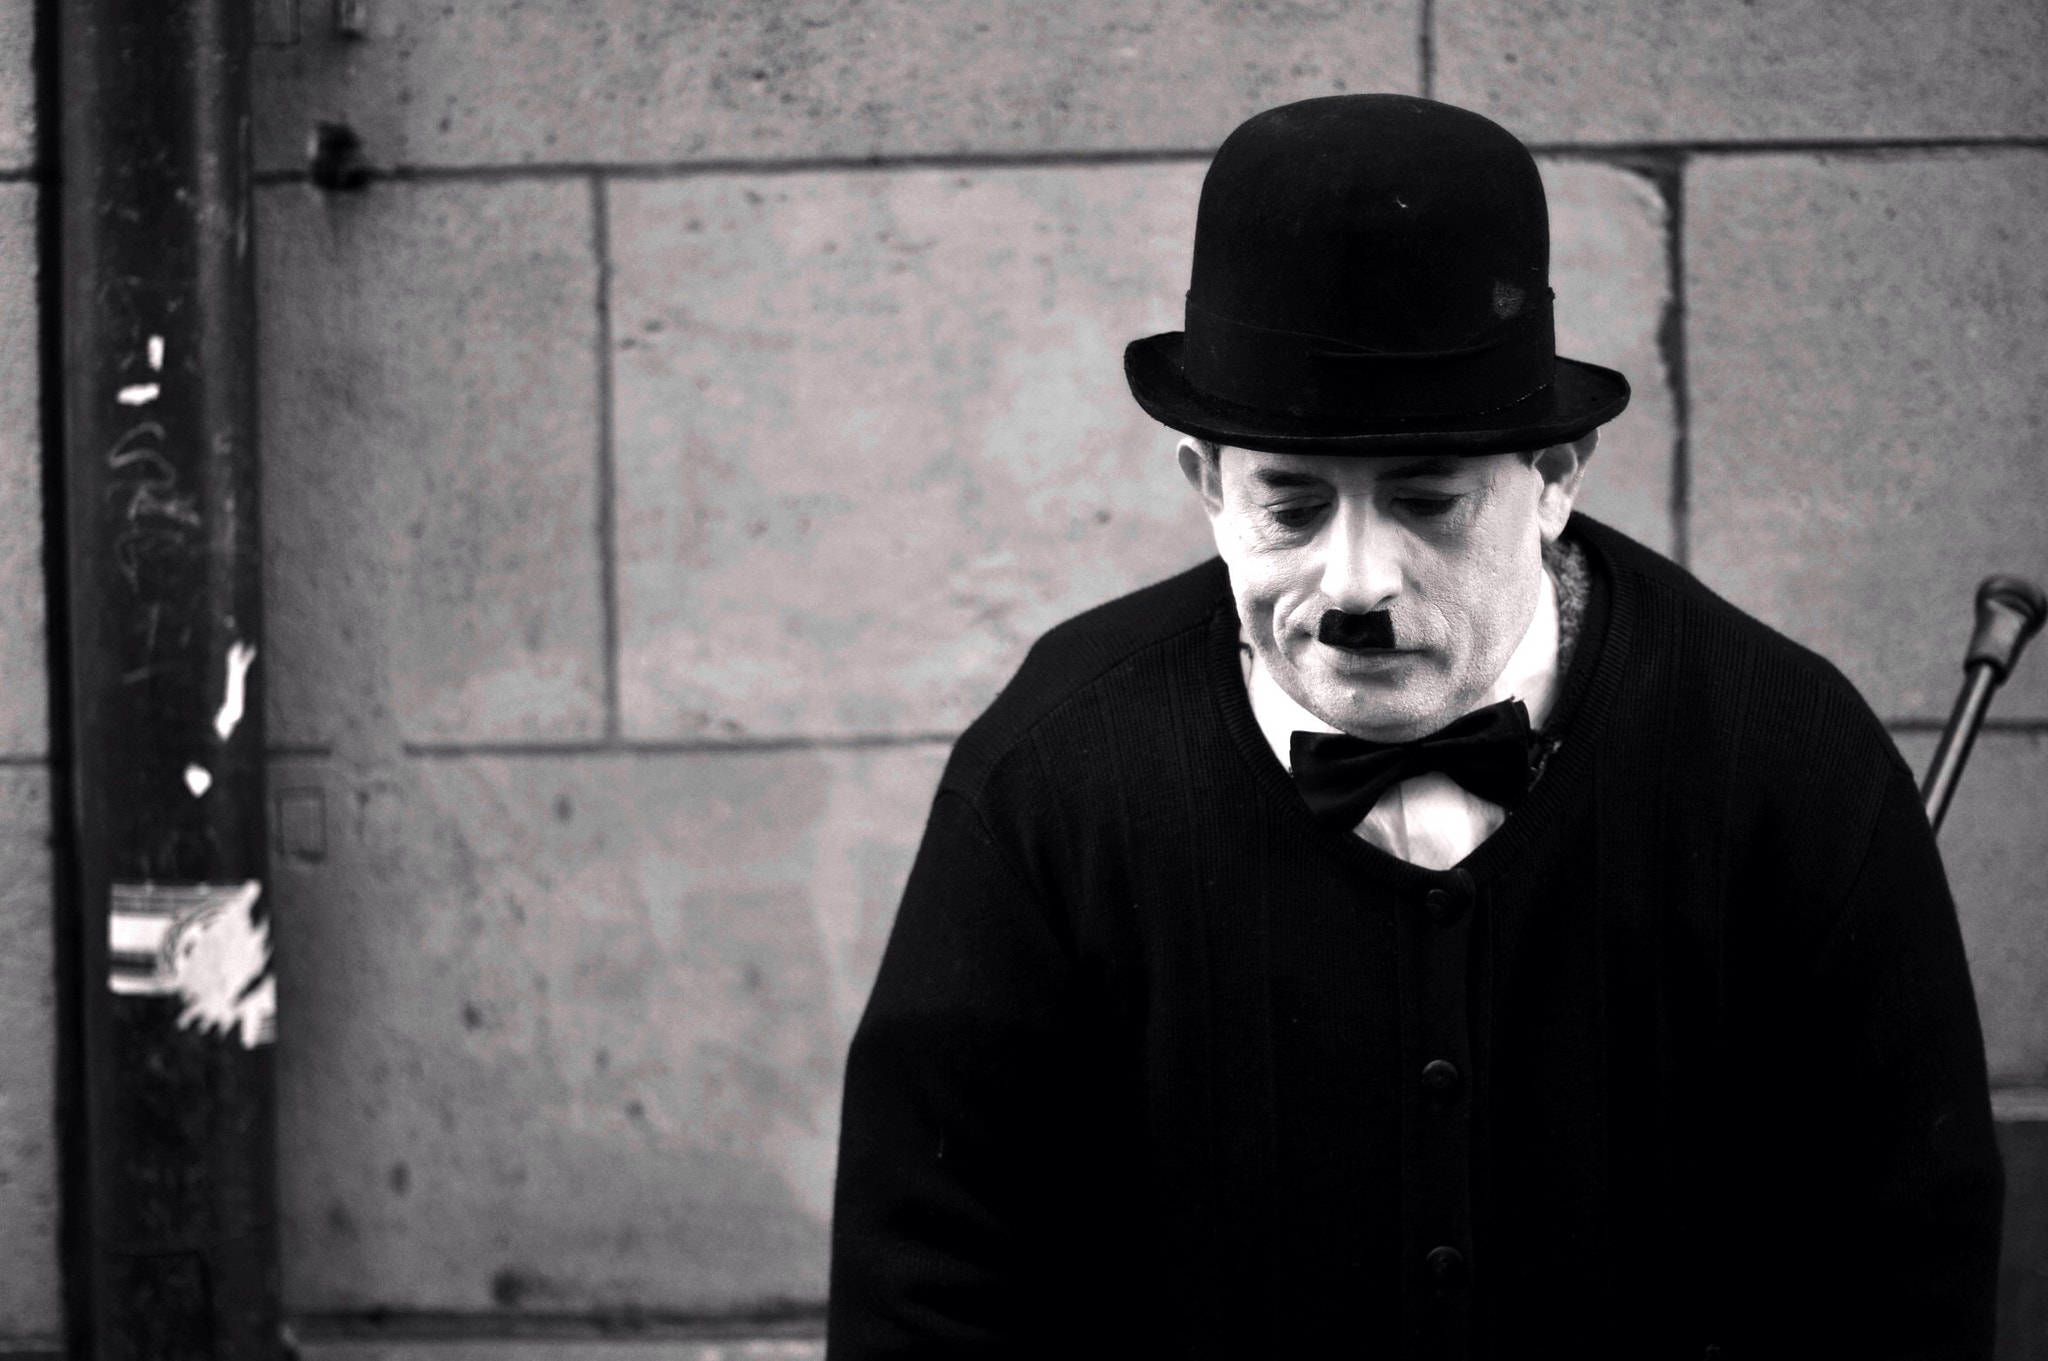 Photograph Hommage à Charlot by Giuseppe De Luca on 500px